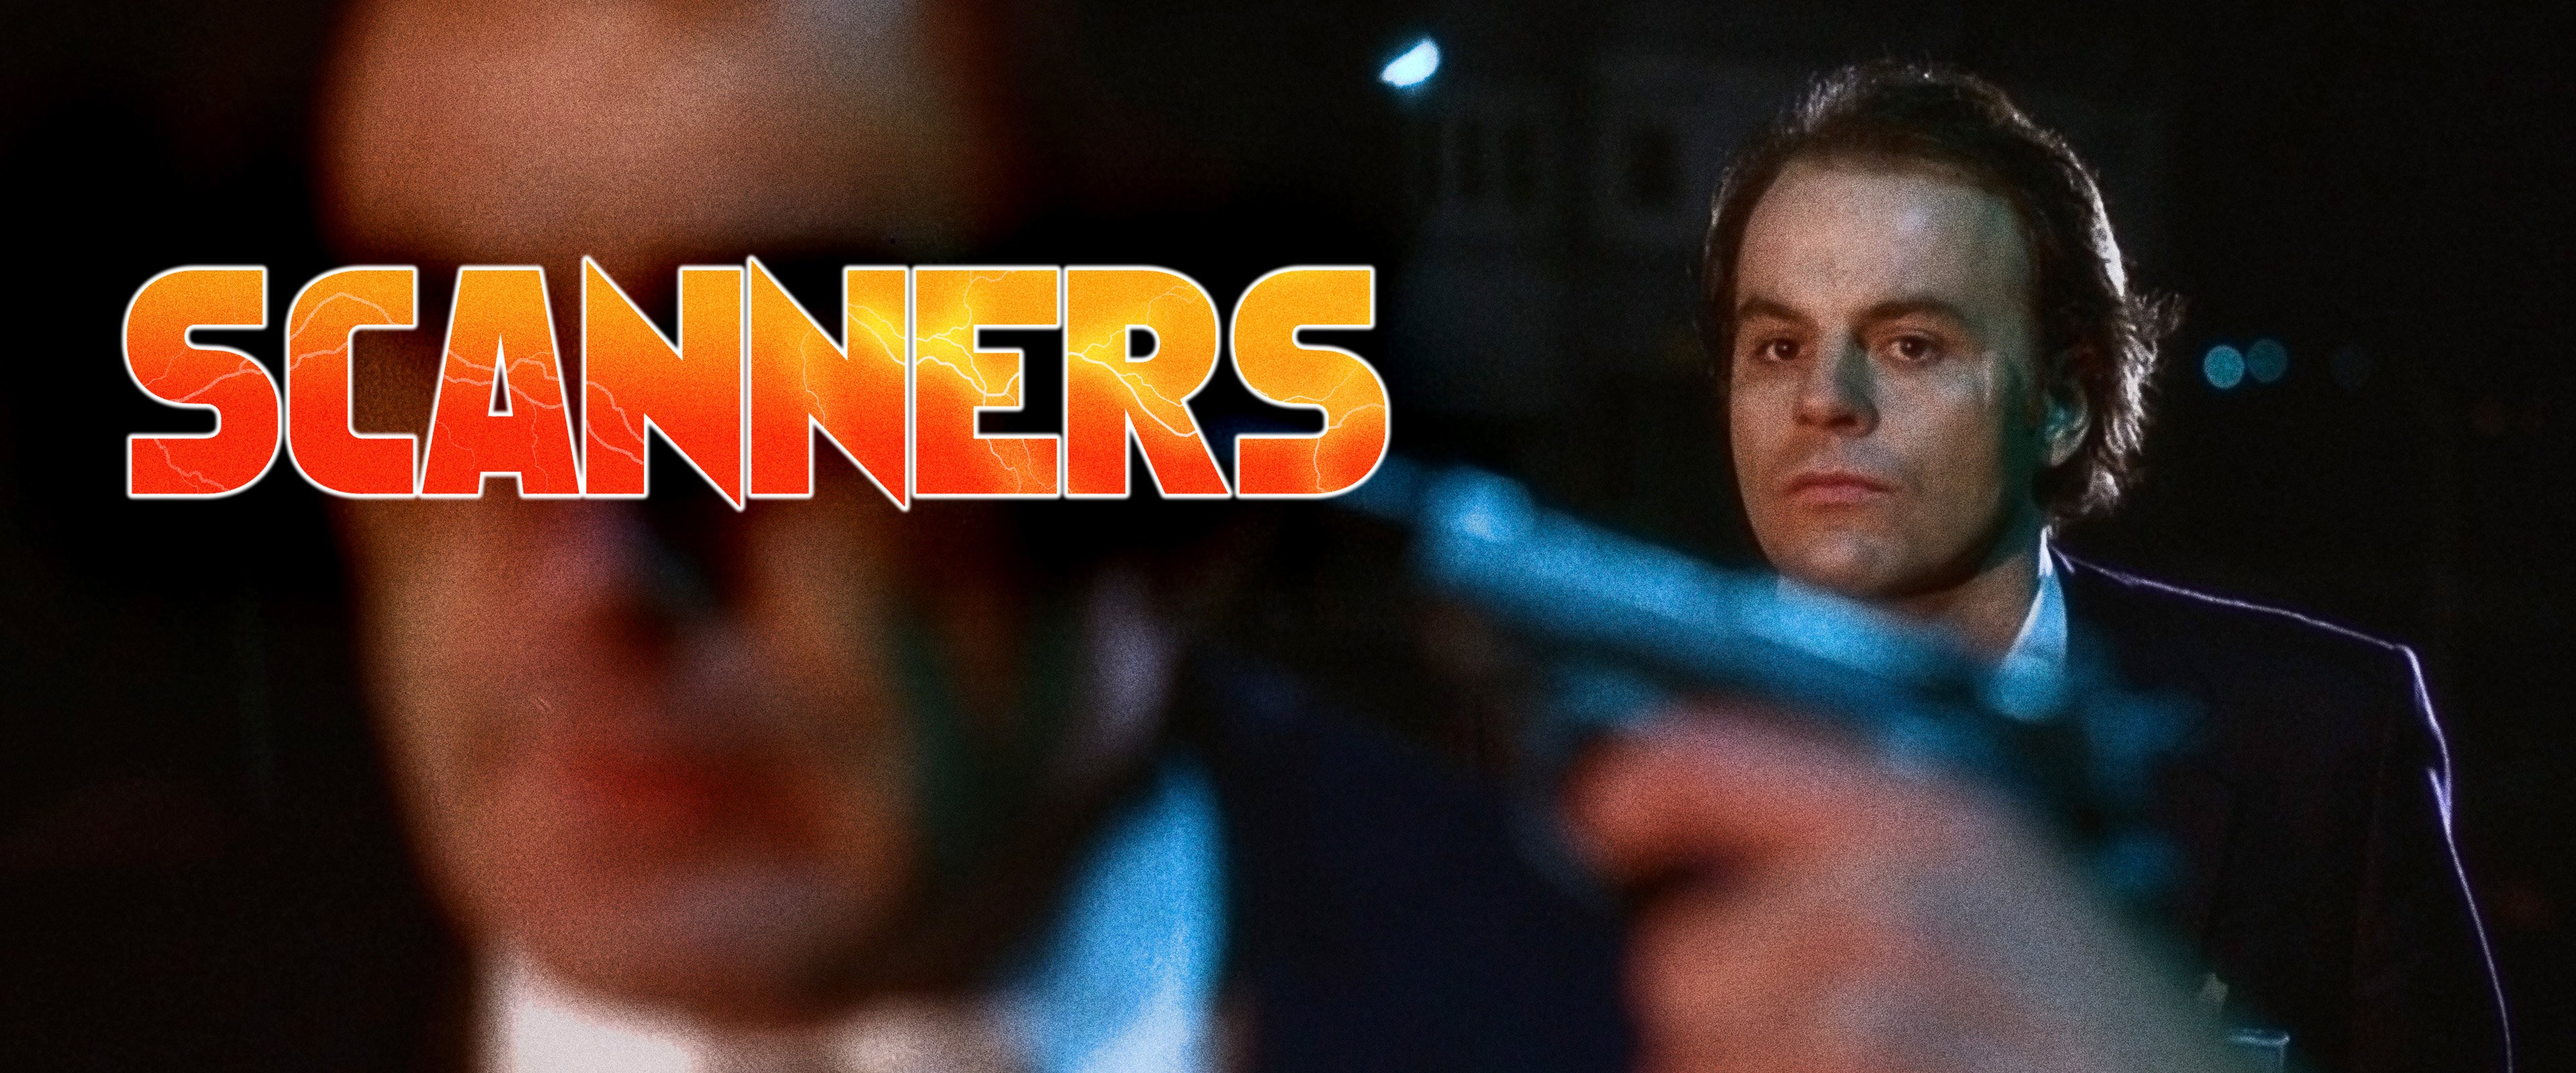 Scanners - David Cronenberg